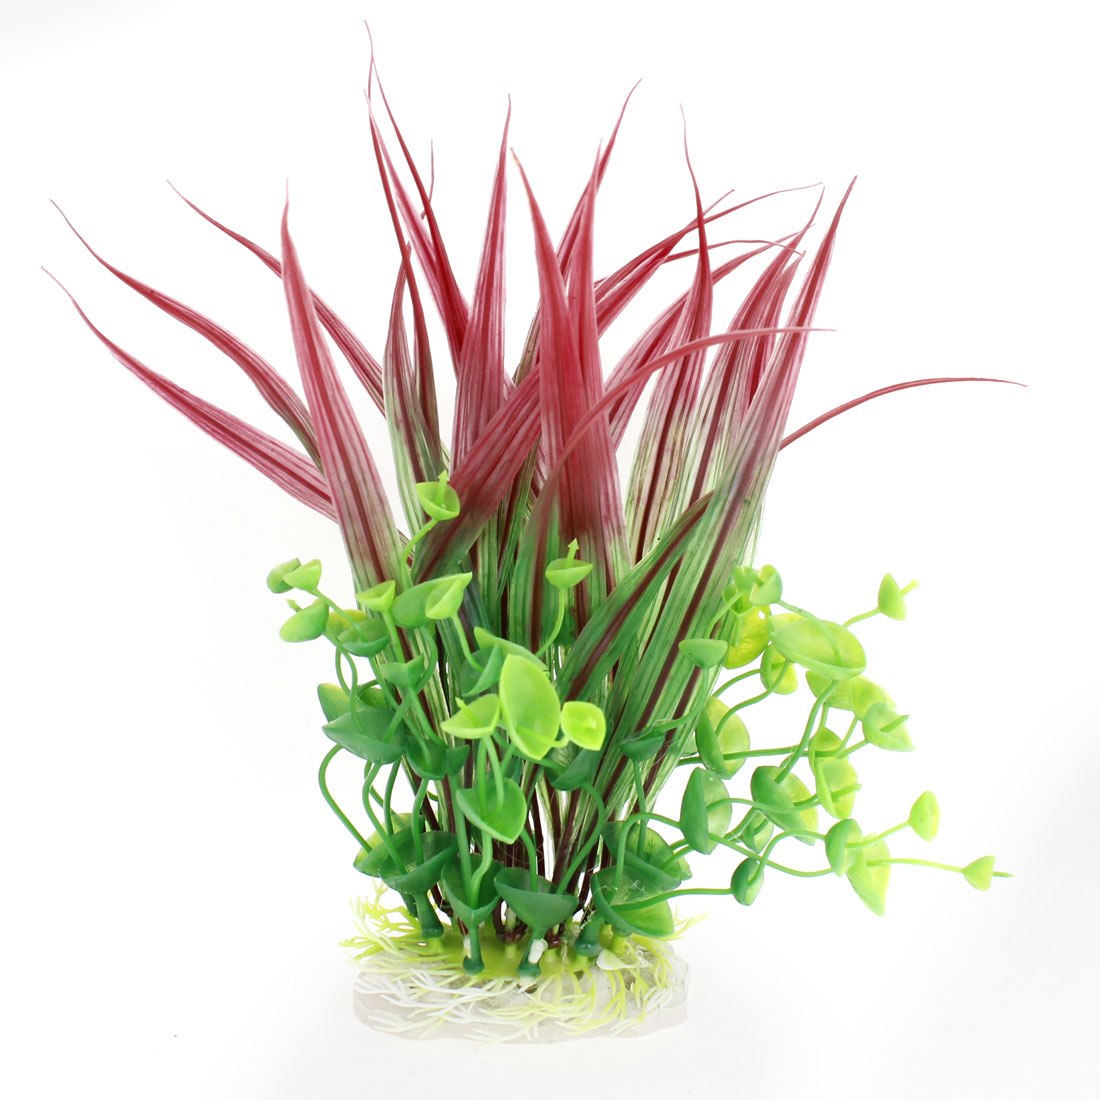 Plastic-Manmade-Green-Red-Underwater-Plant-Fish-Tank-Aquarium-Decoration